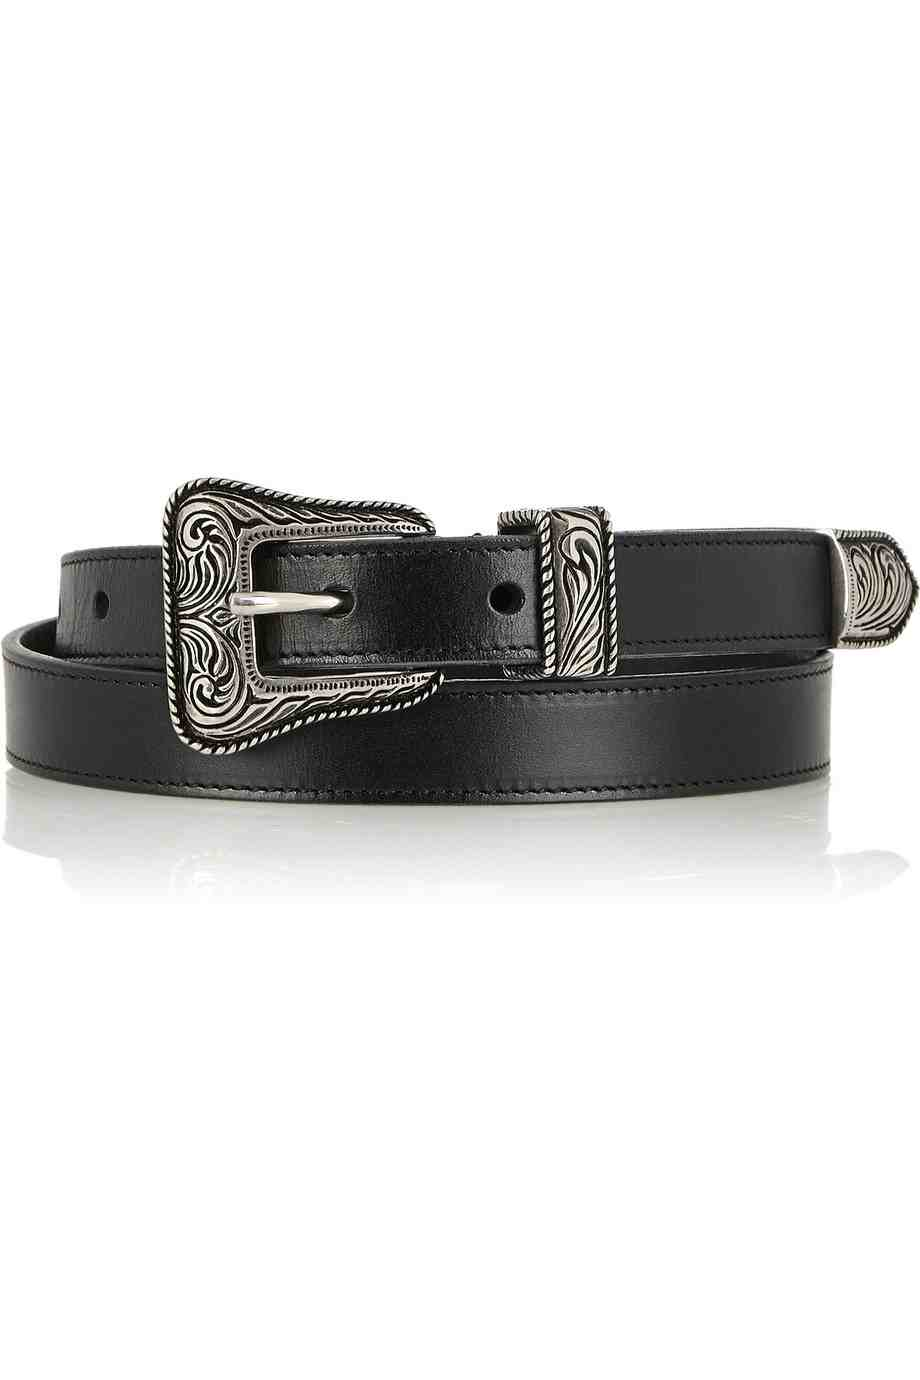 Saint Laurent - Ceinture (295 €)